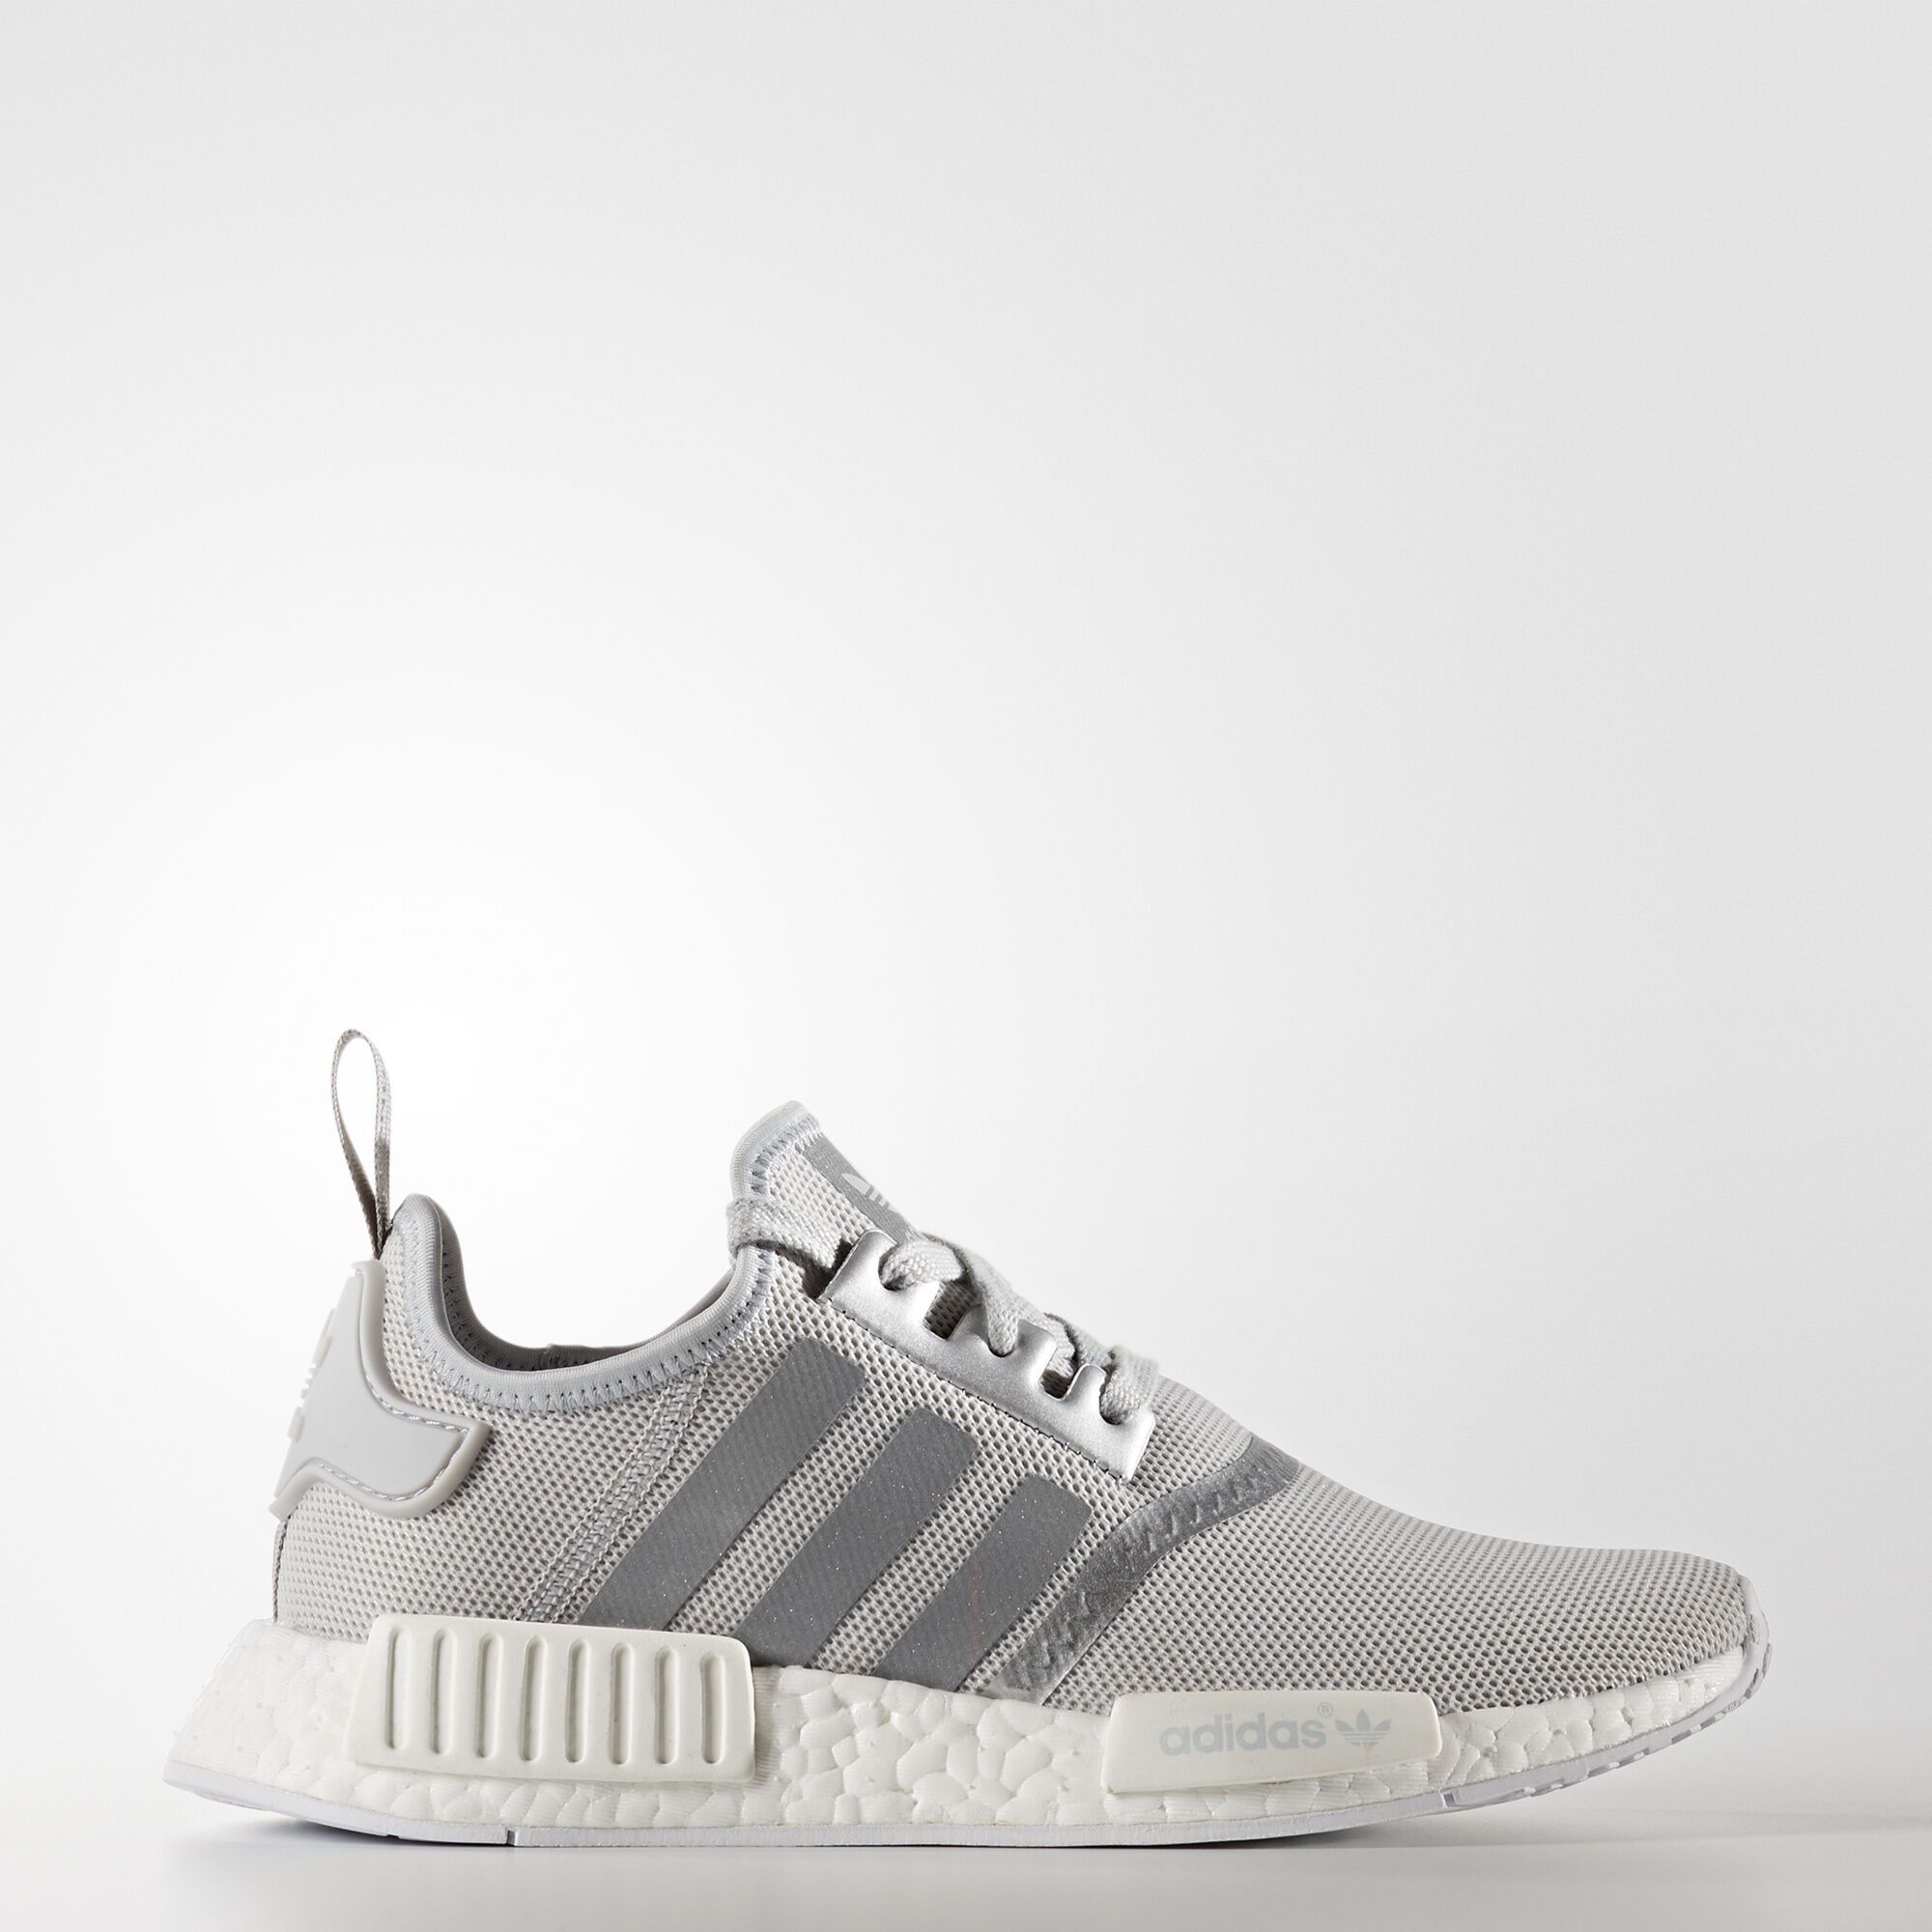 adidas nmd r1 schuh silber adidas deutschland. Black Bedroom Furniture Sets. Home Design Ideas